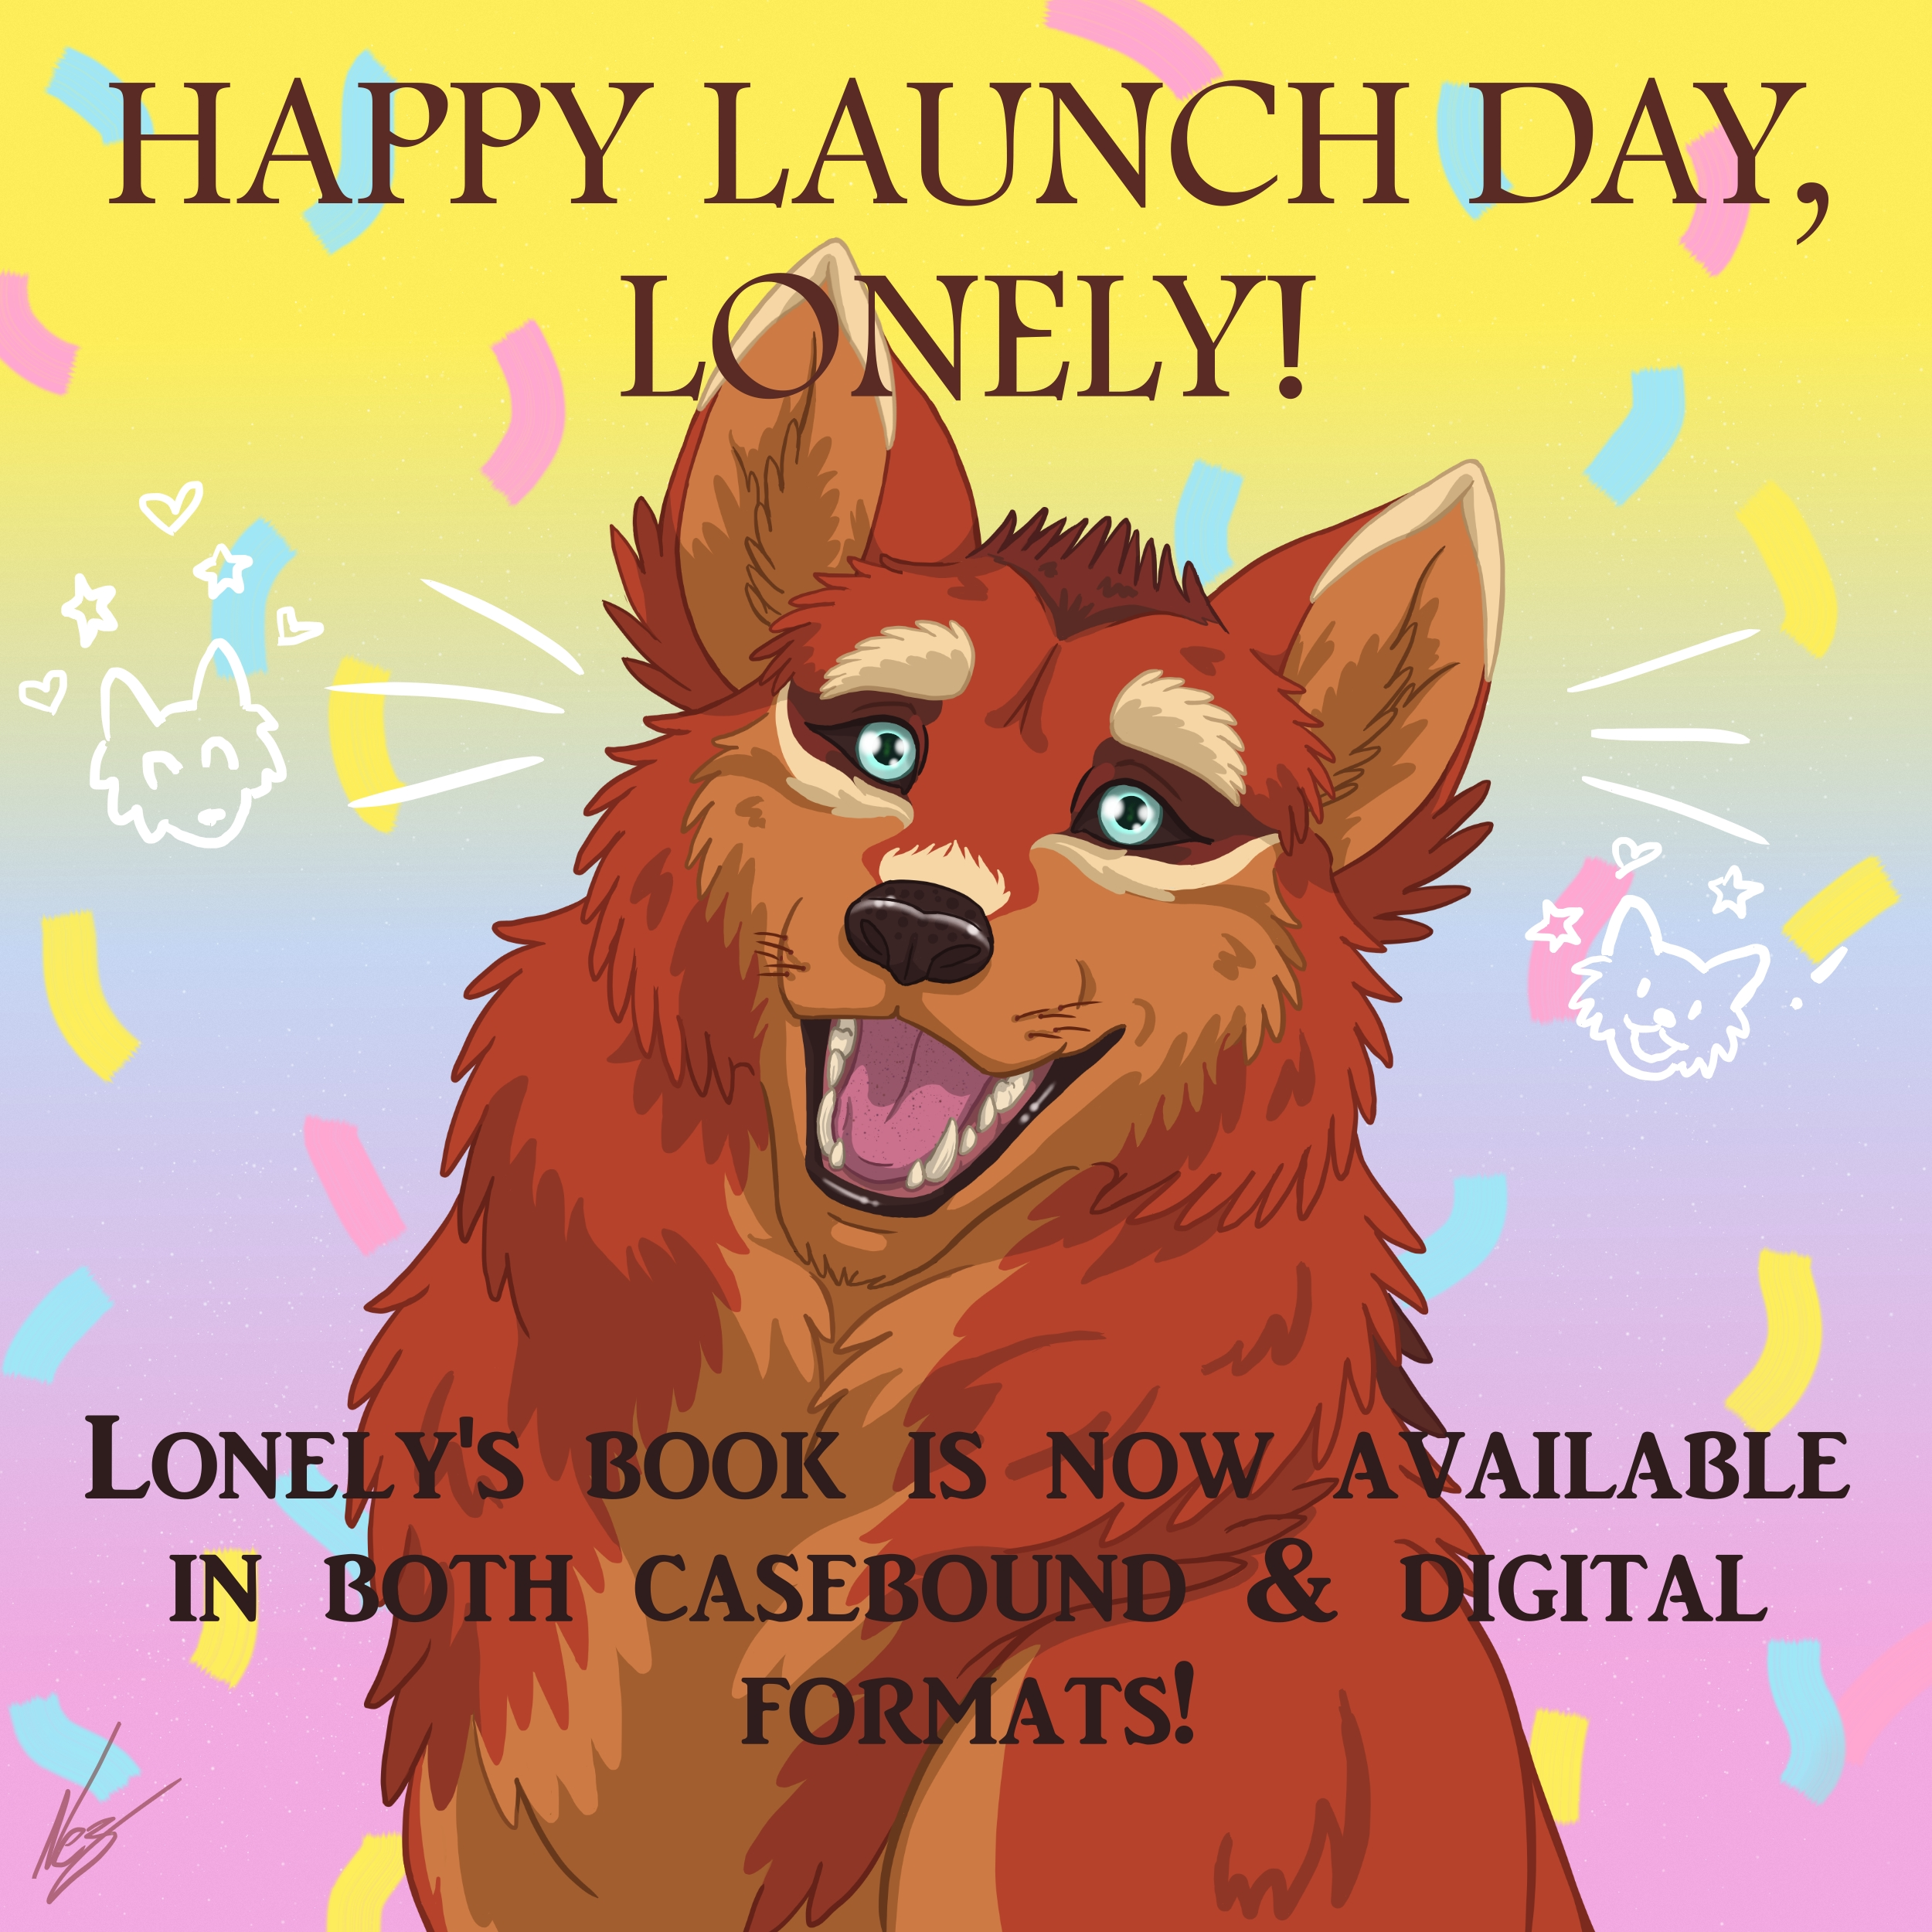 Launch Day Lonely 2